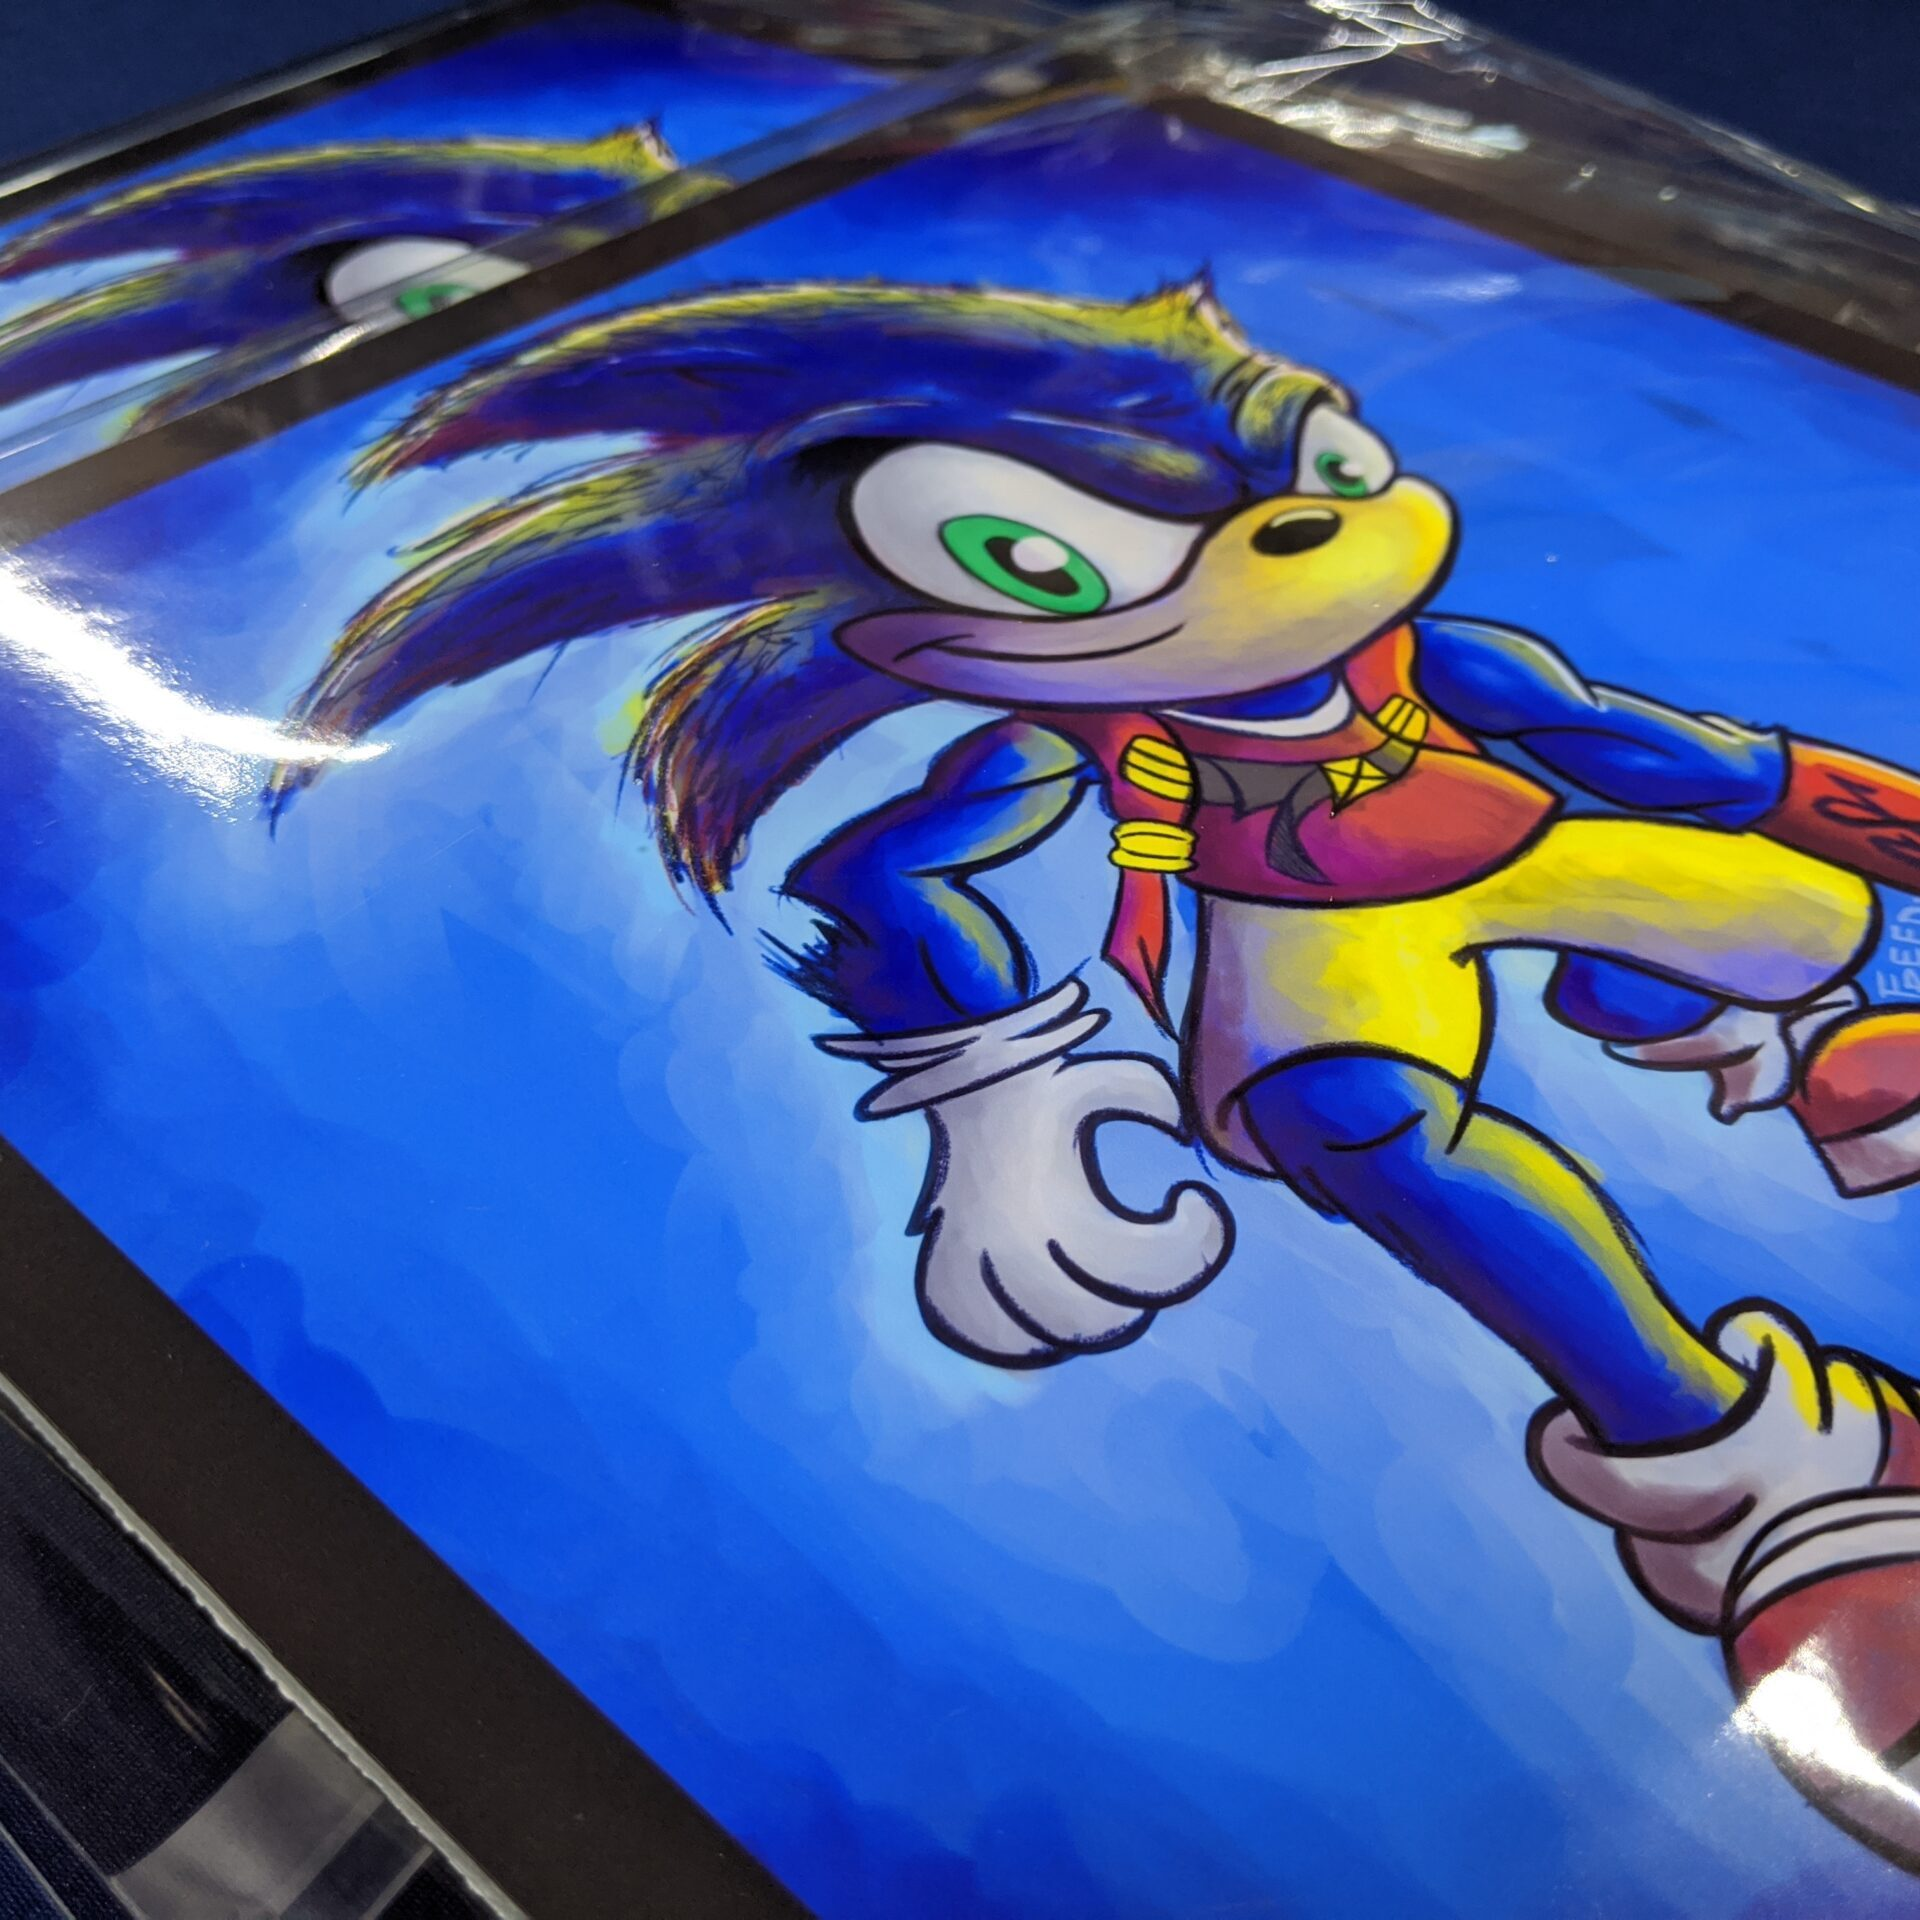 8.5x8.5 Sonic Prints in poly protective plastic cover